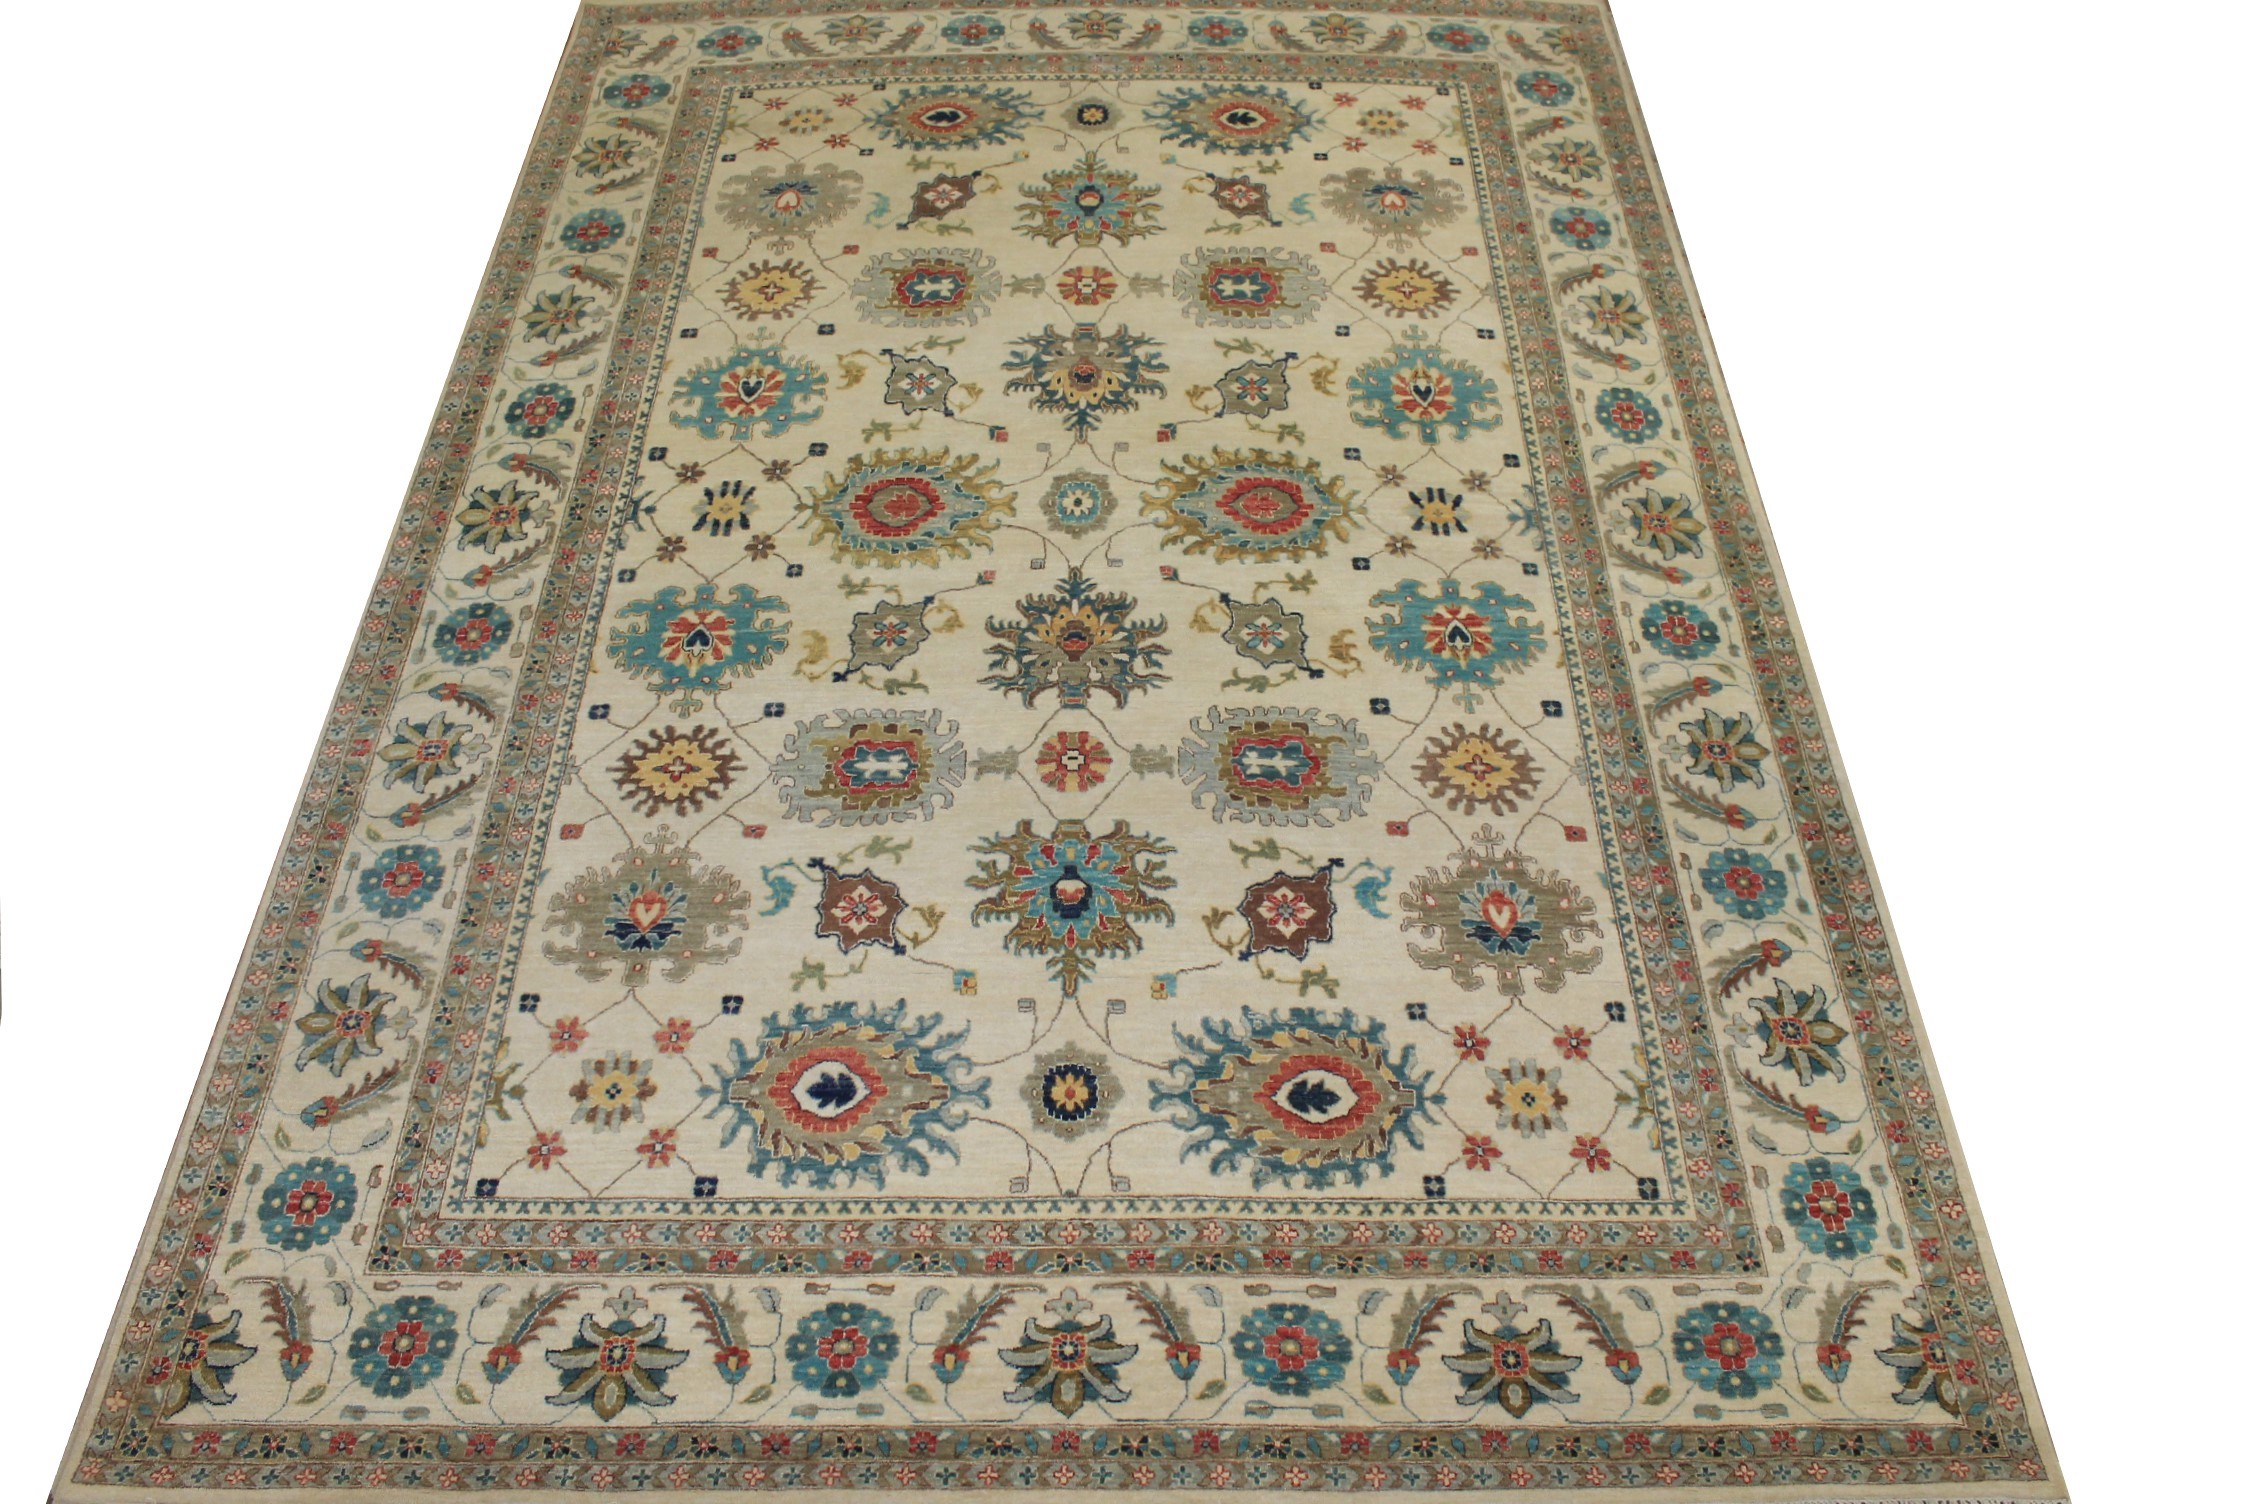 10x14 Traditional Hand Knotted Wool Area Rug - MR024146